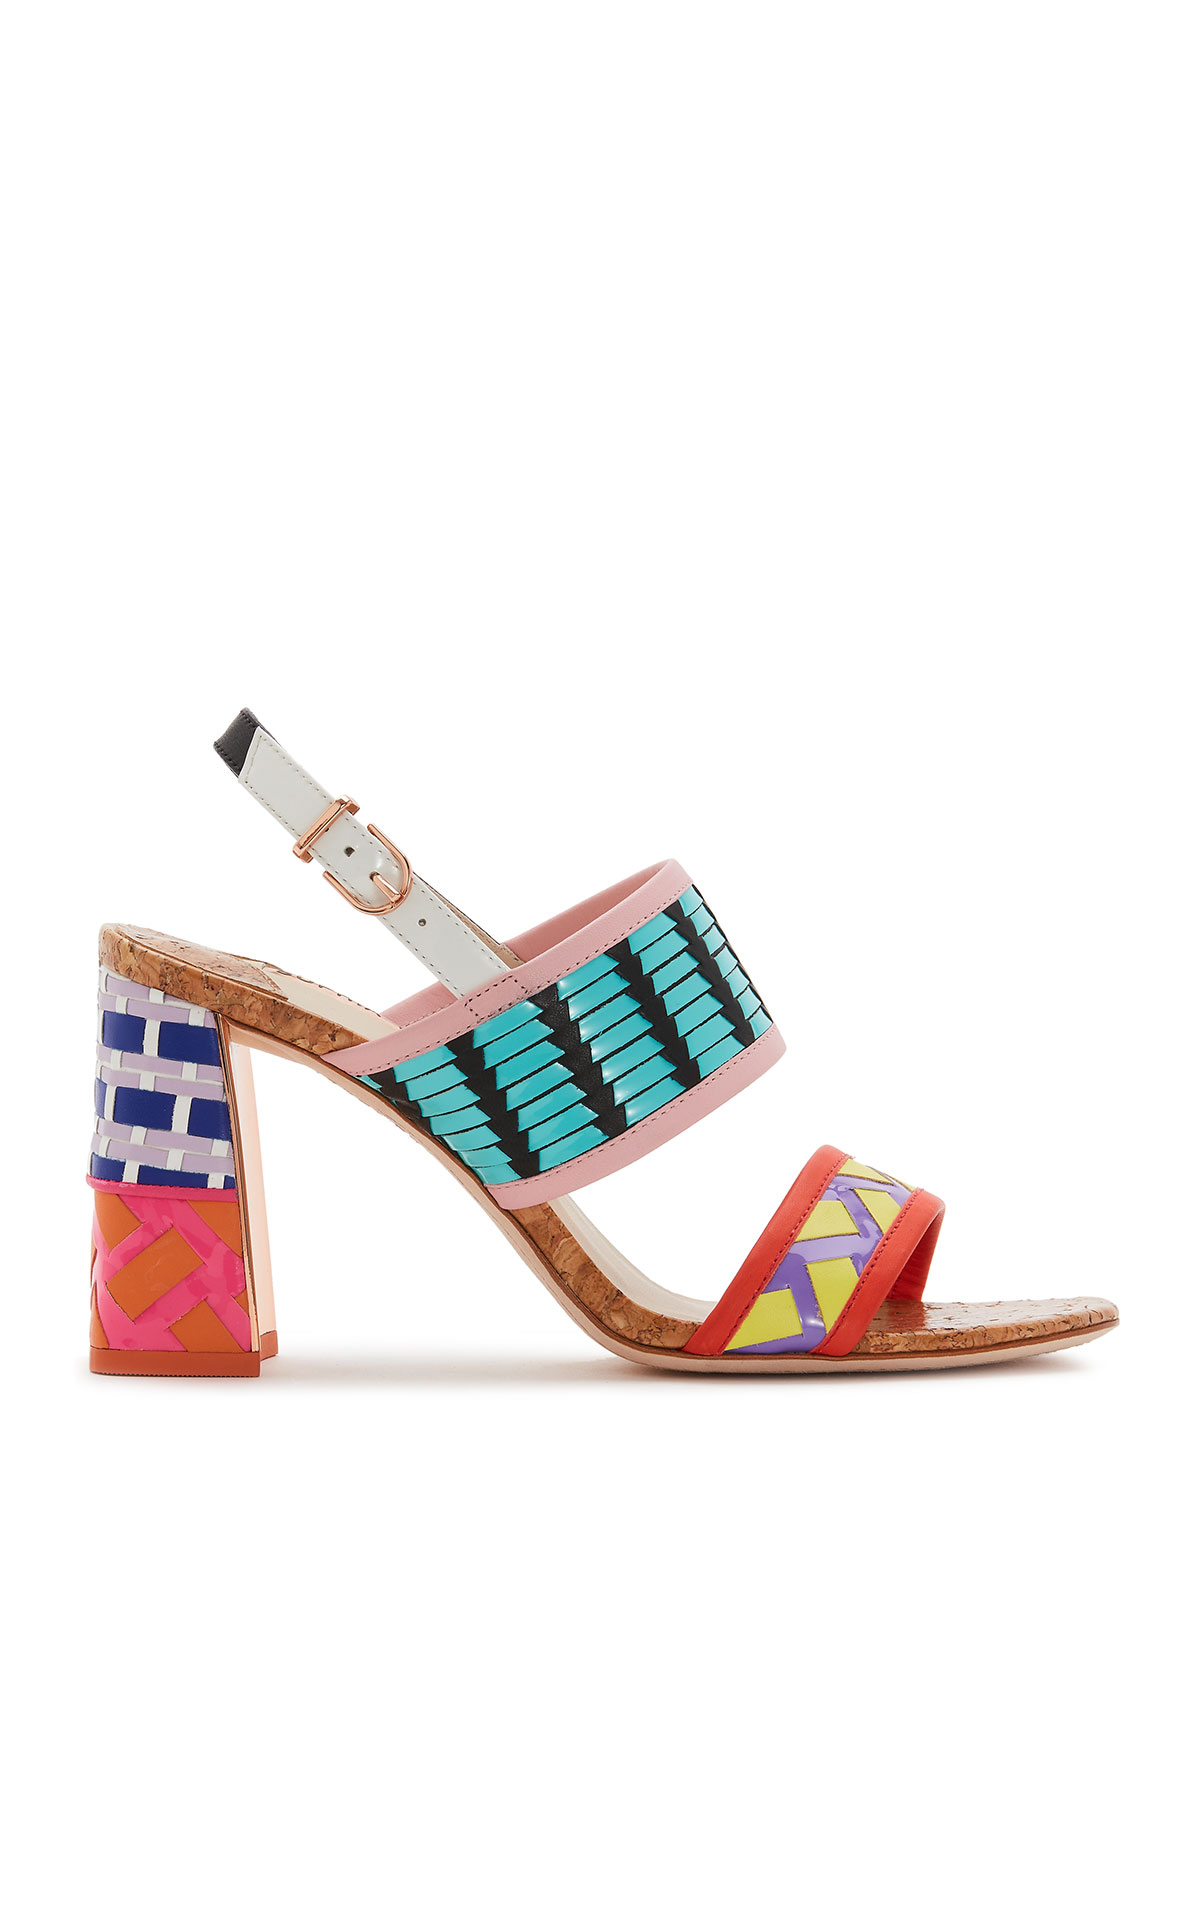 Sophia Webster Celia mid sandal from Bicester Village